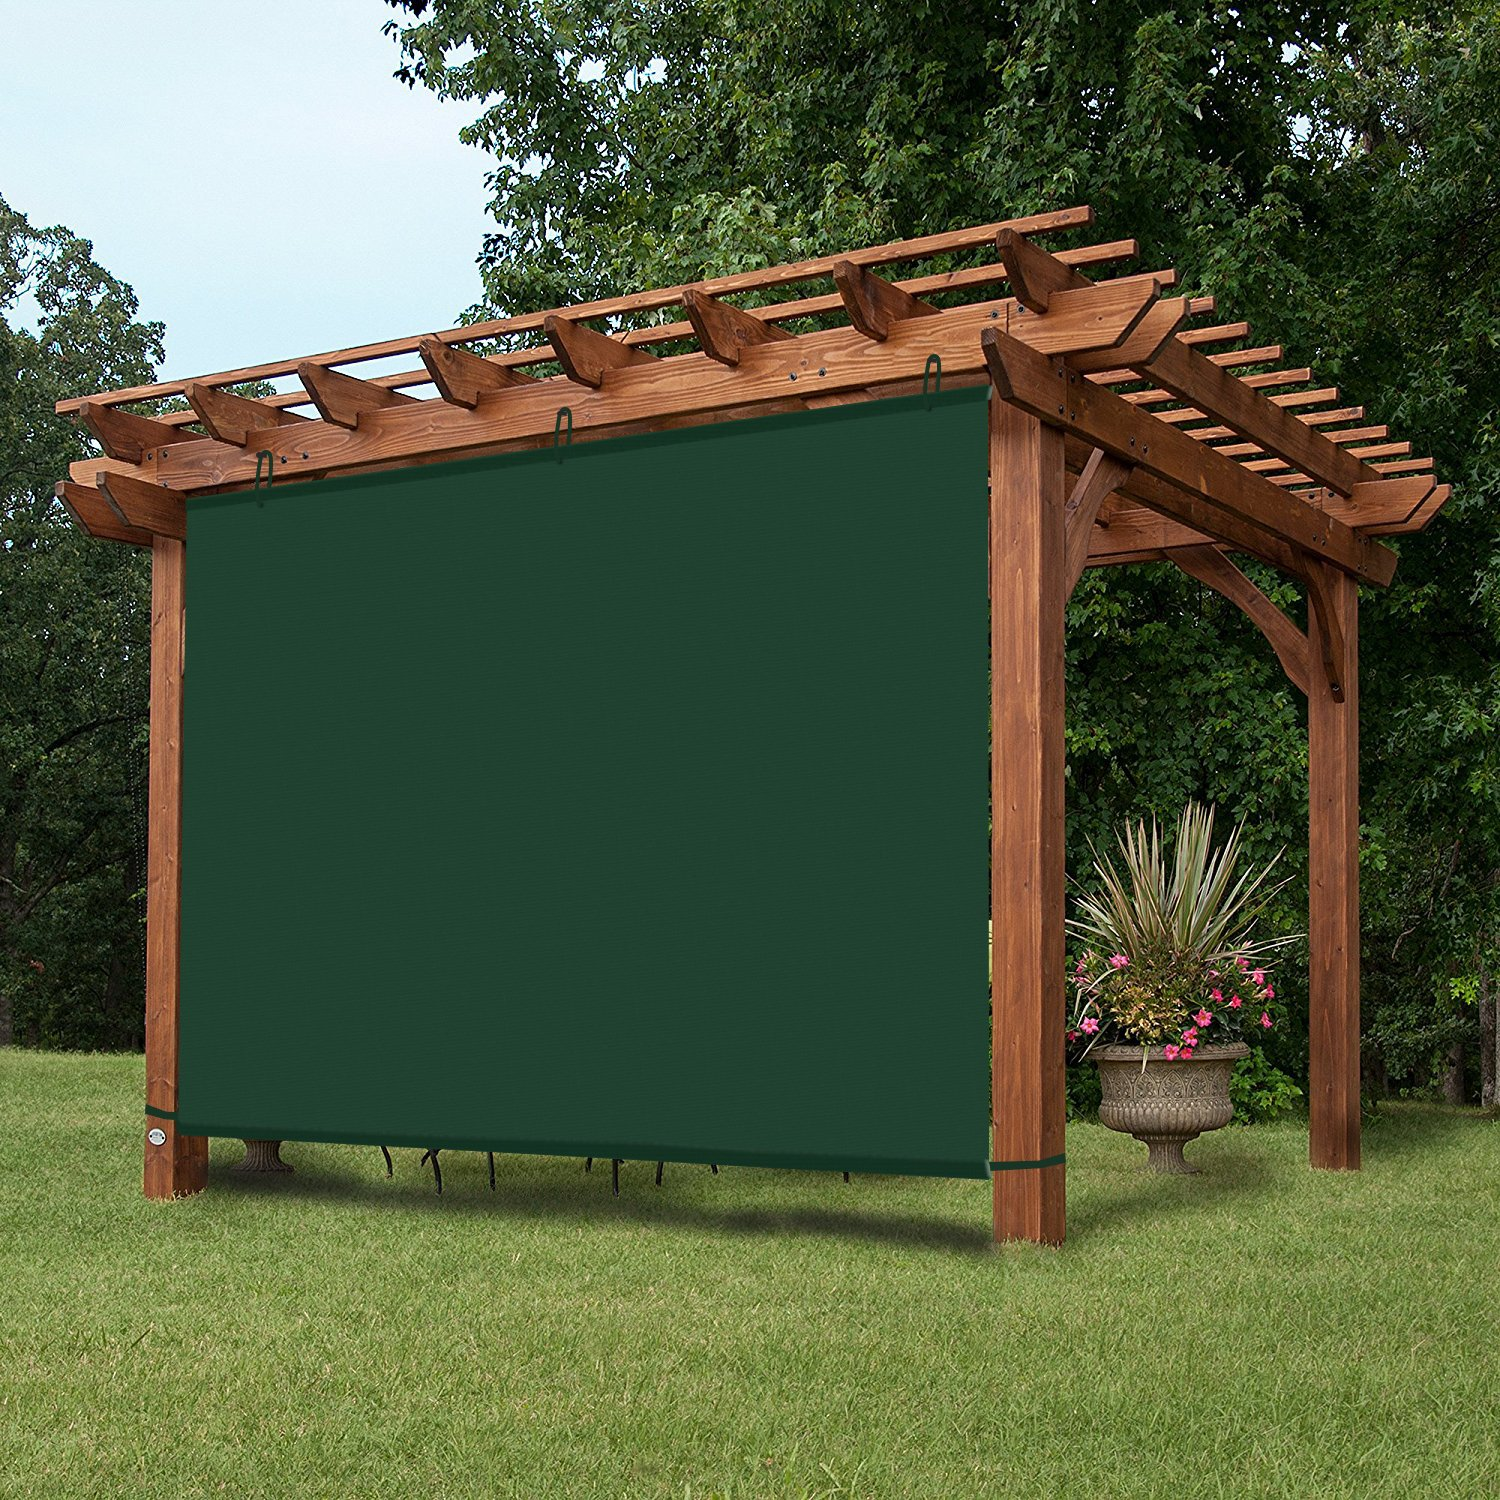 EZ2hang Waterproof 5x4ft Dark Green Alternative solution for Roller Shade,Exterior Privacy Side Shade Panel for Pergola, Patio,